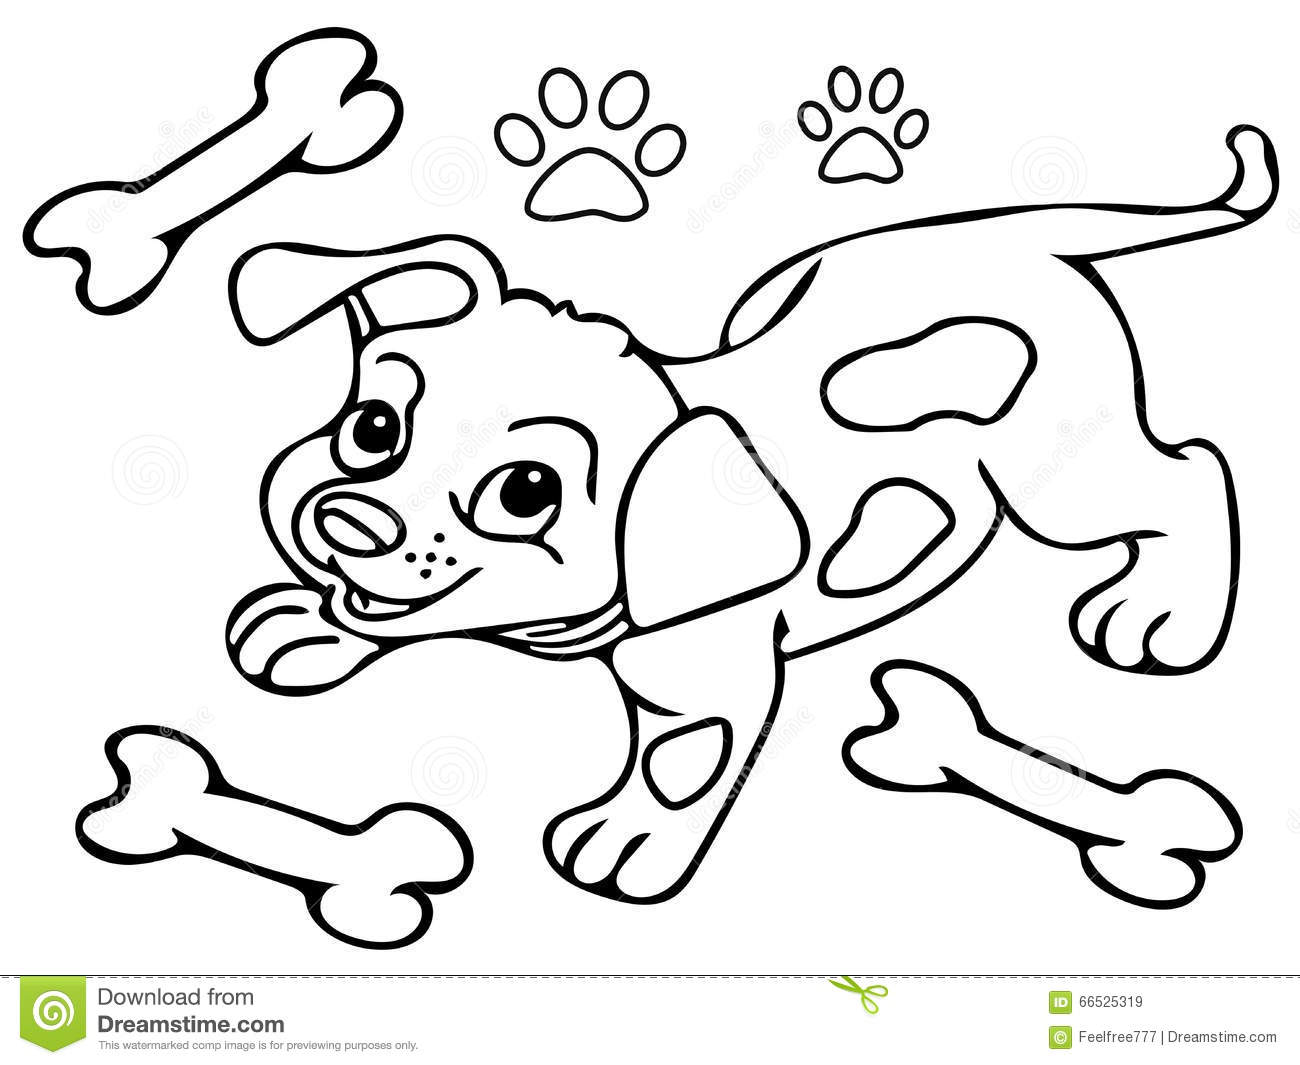 royalty free stock images  funny dog coloring pages  image  66525319